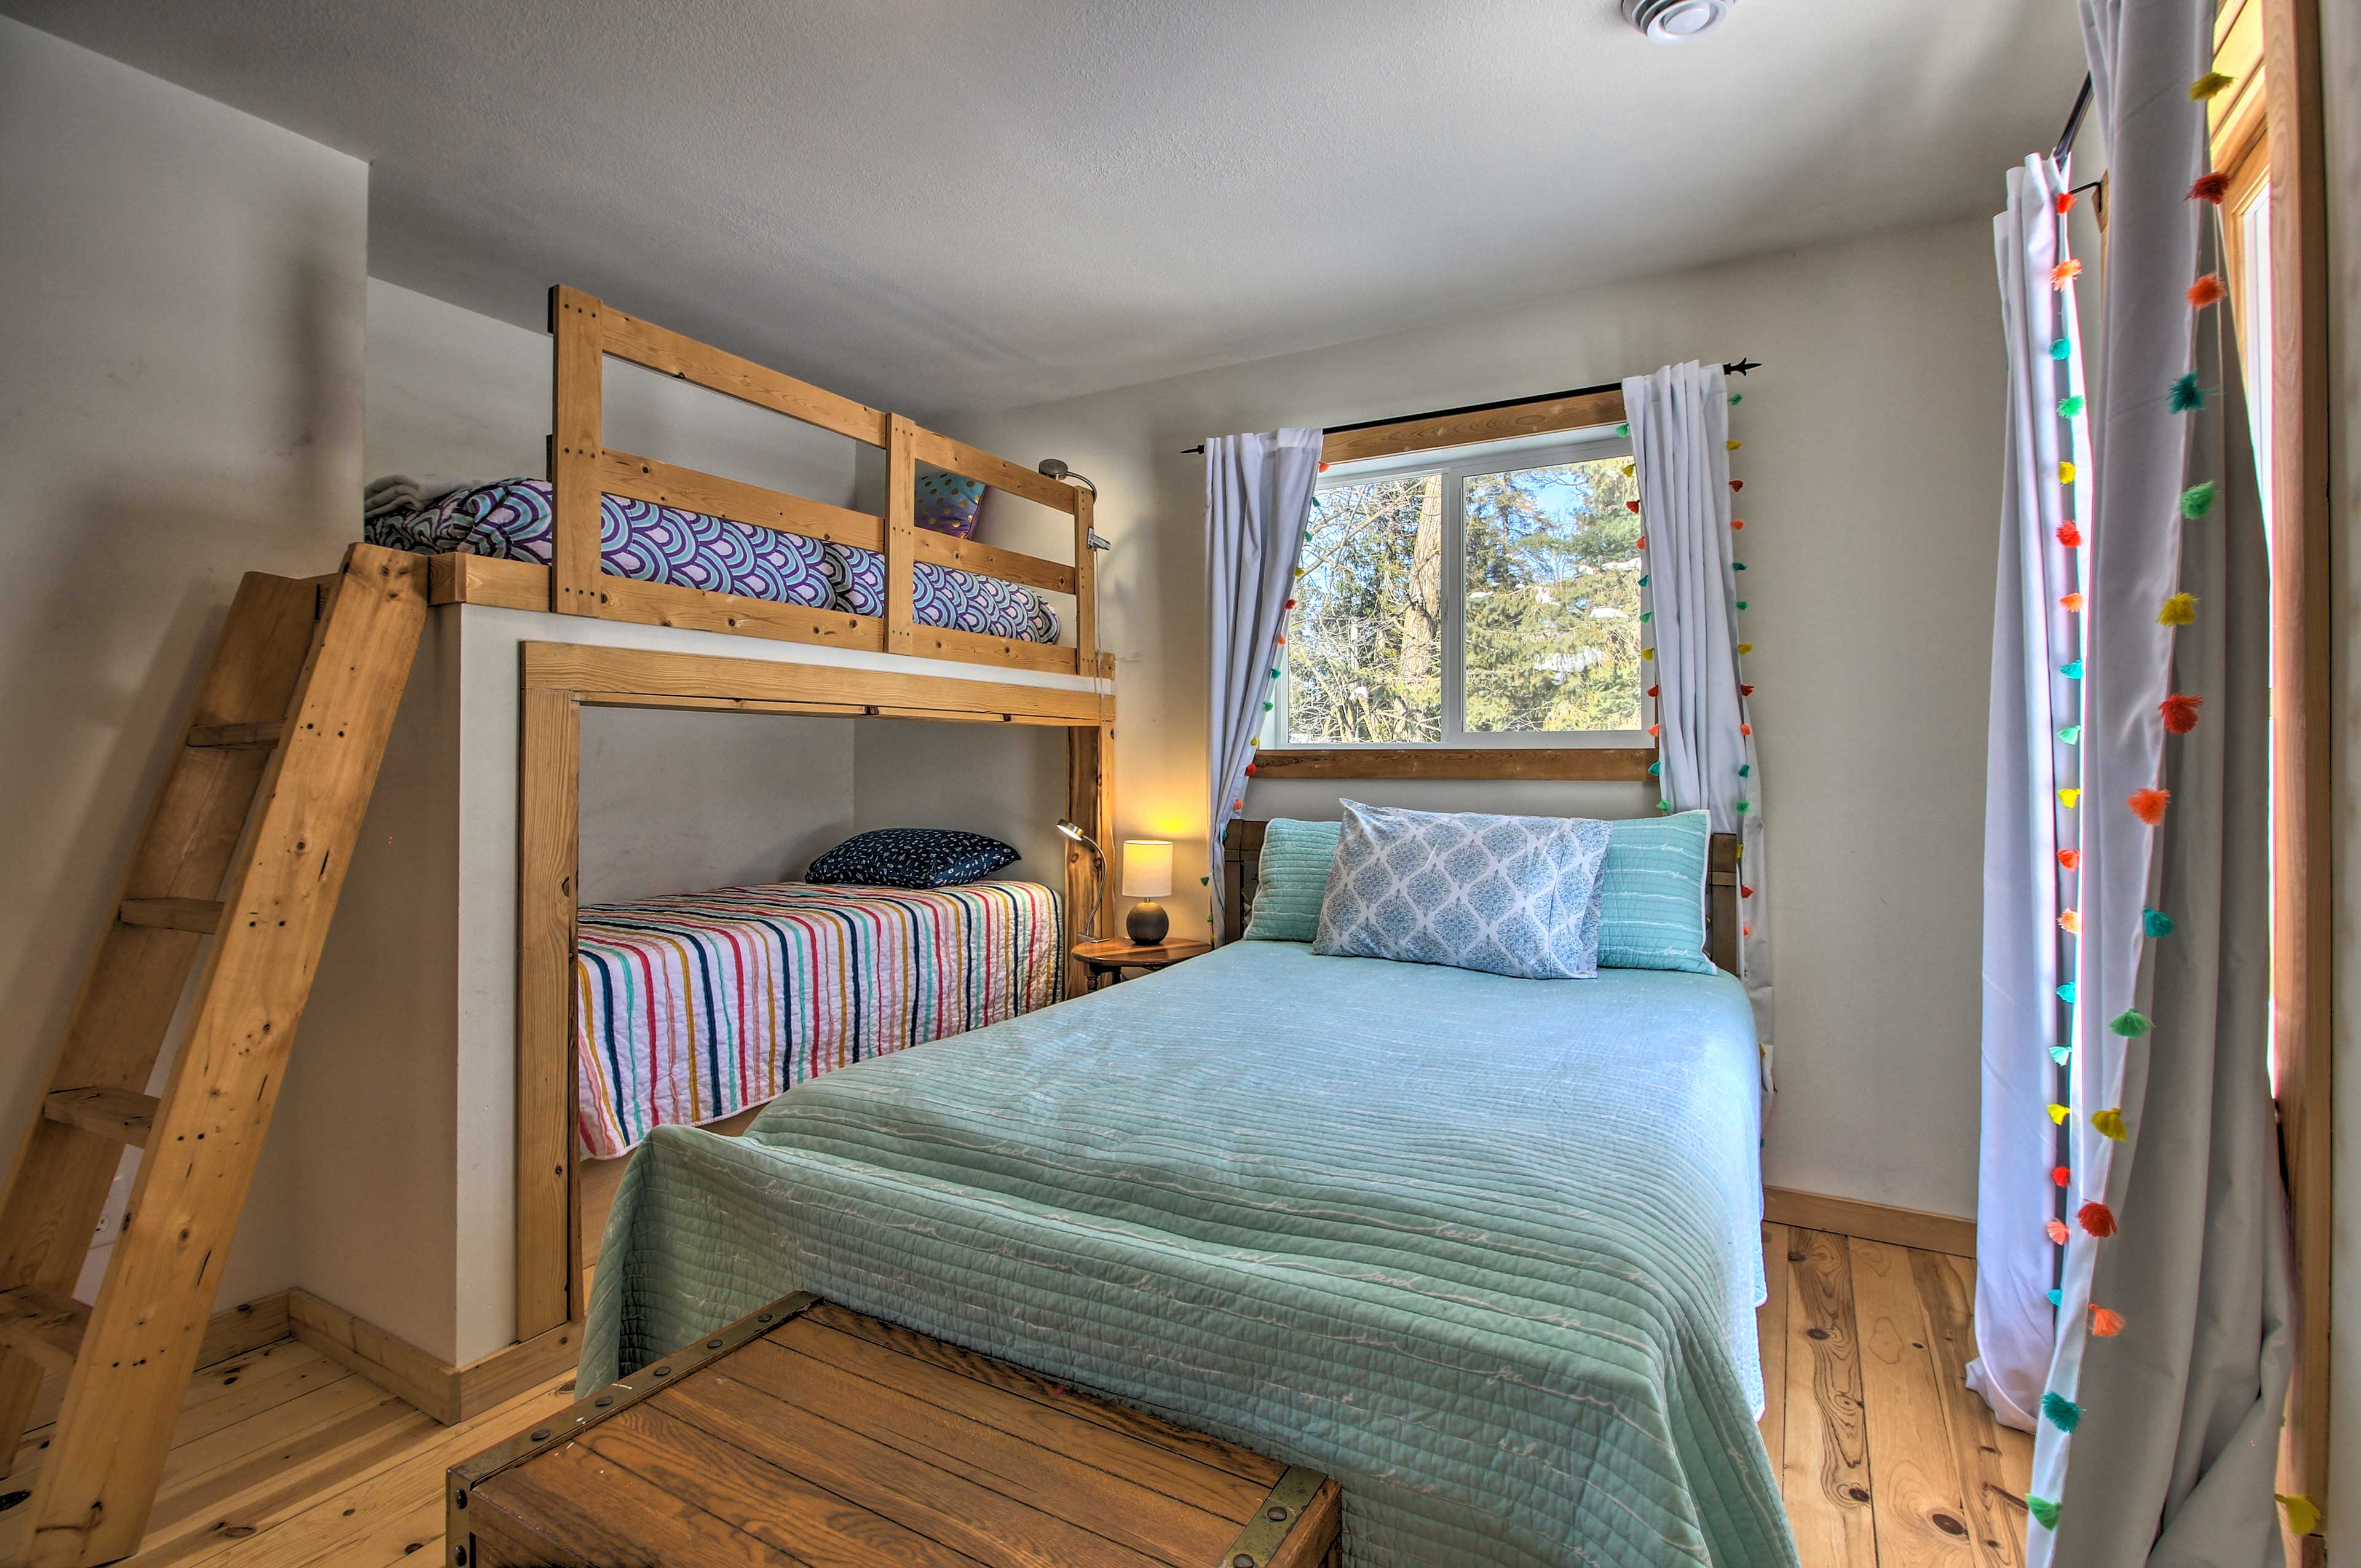 This bedroom is great for the kiddos.